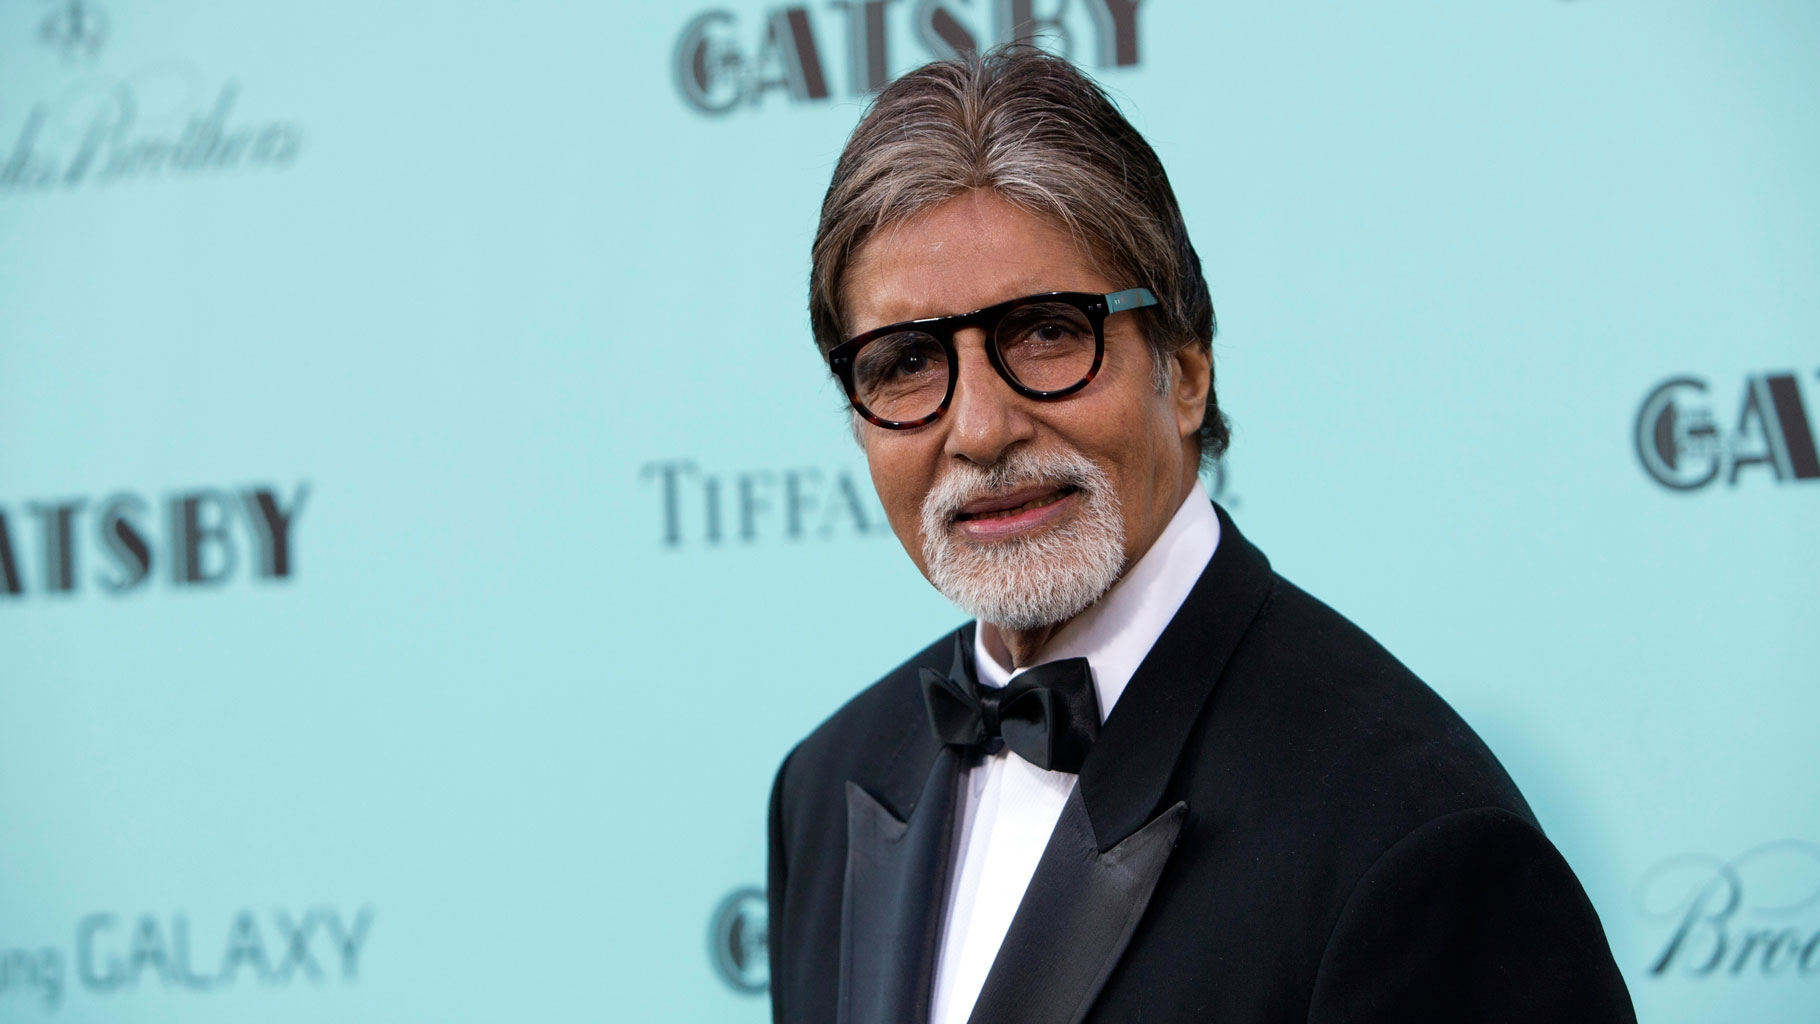 Amitabh Bachchan May Buy Stakes in IPL's Rajasthan Royals: Reports